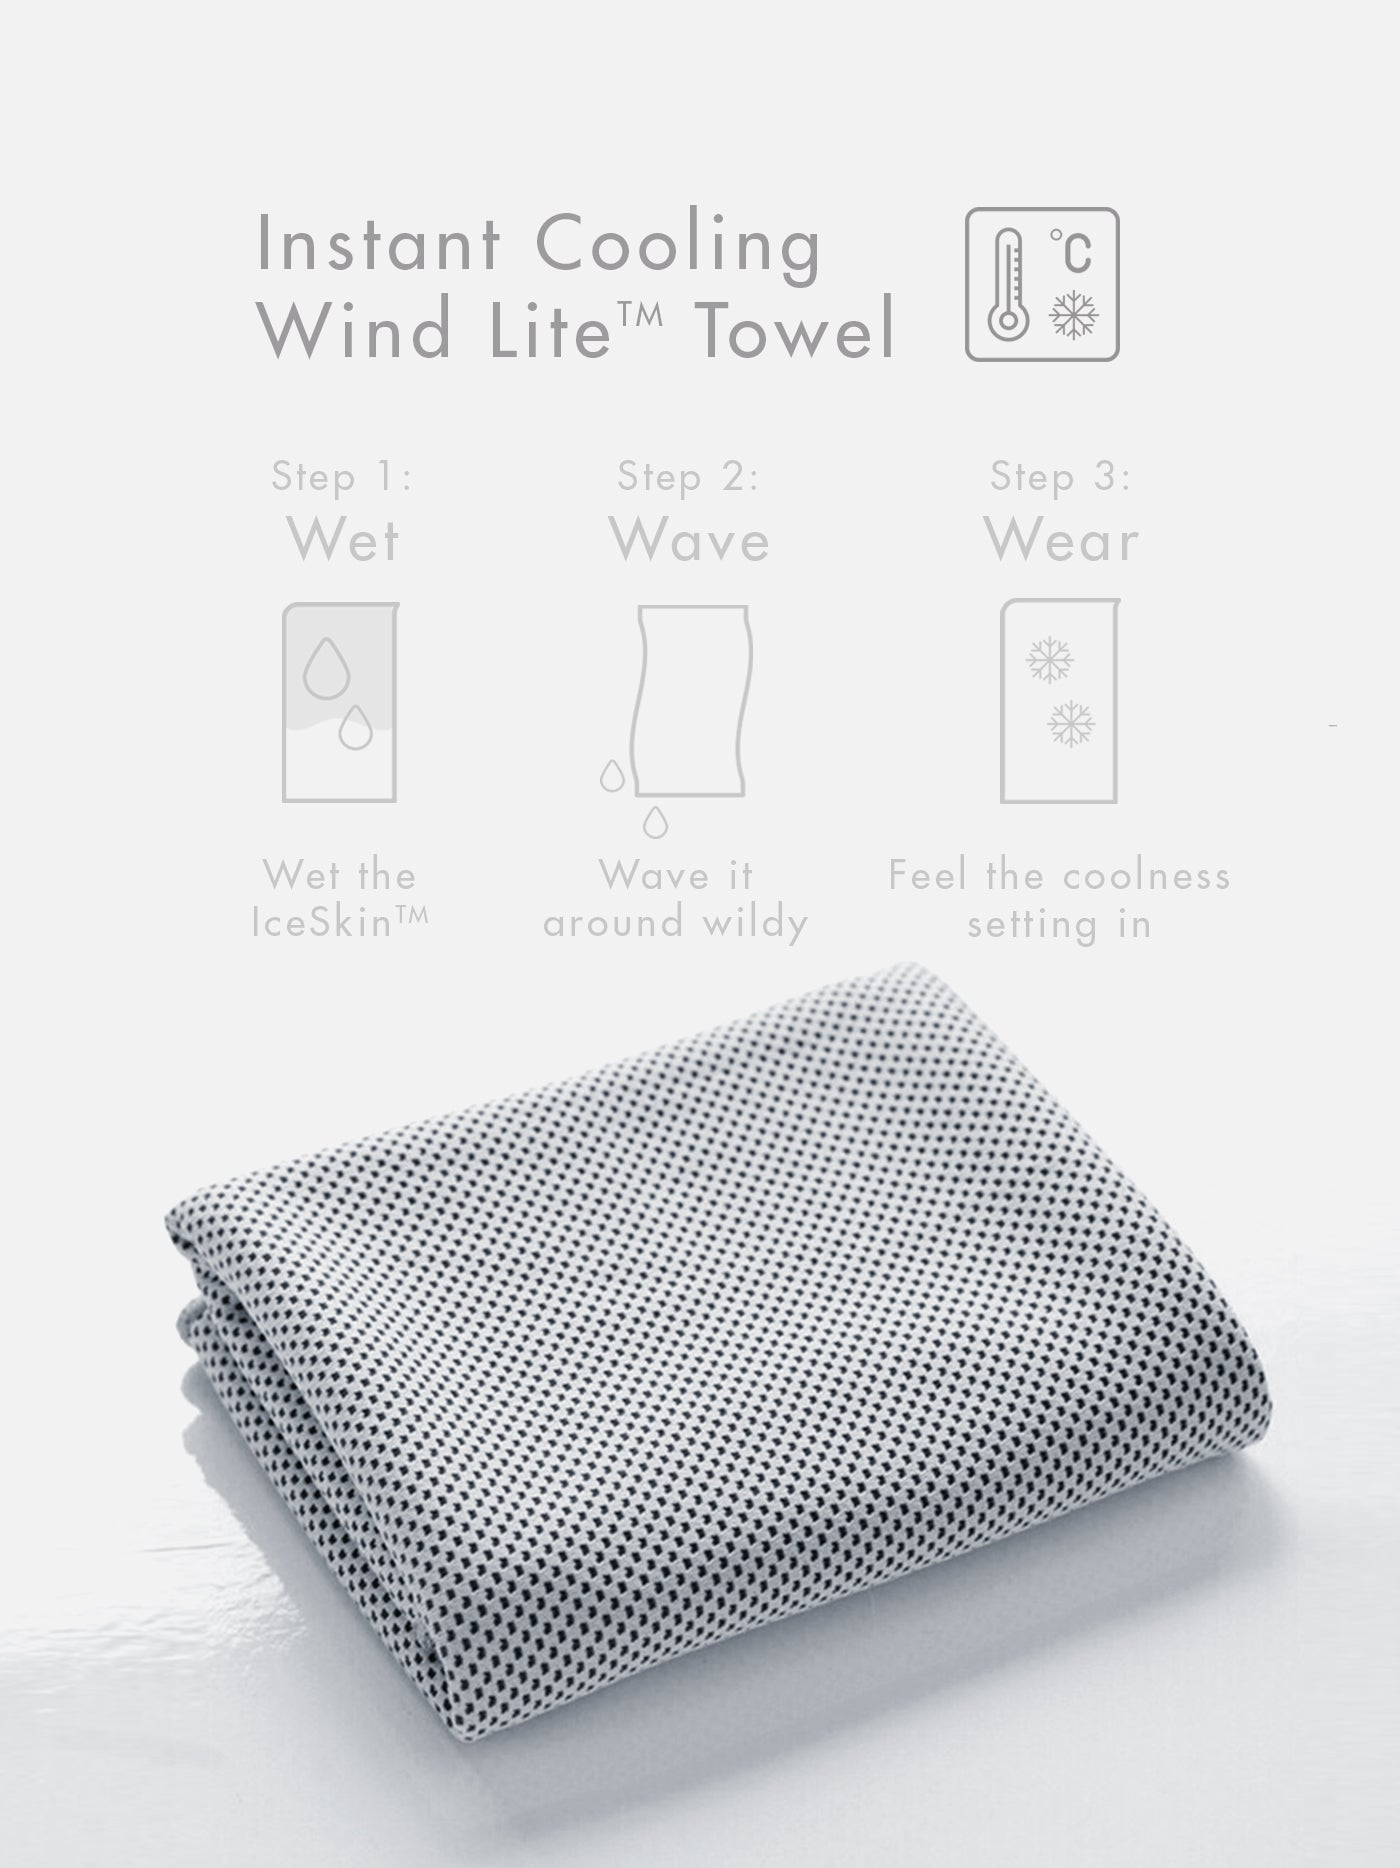 Wind Lite Towel